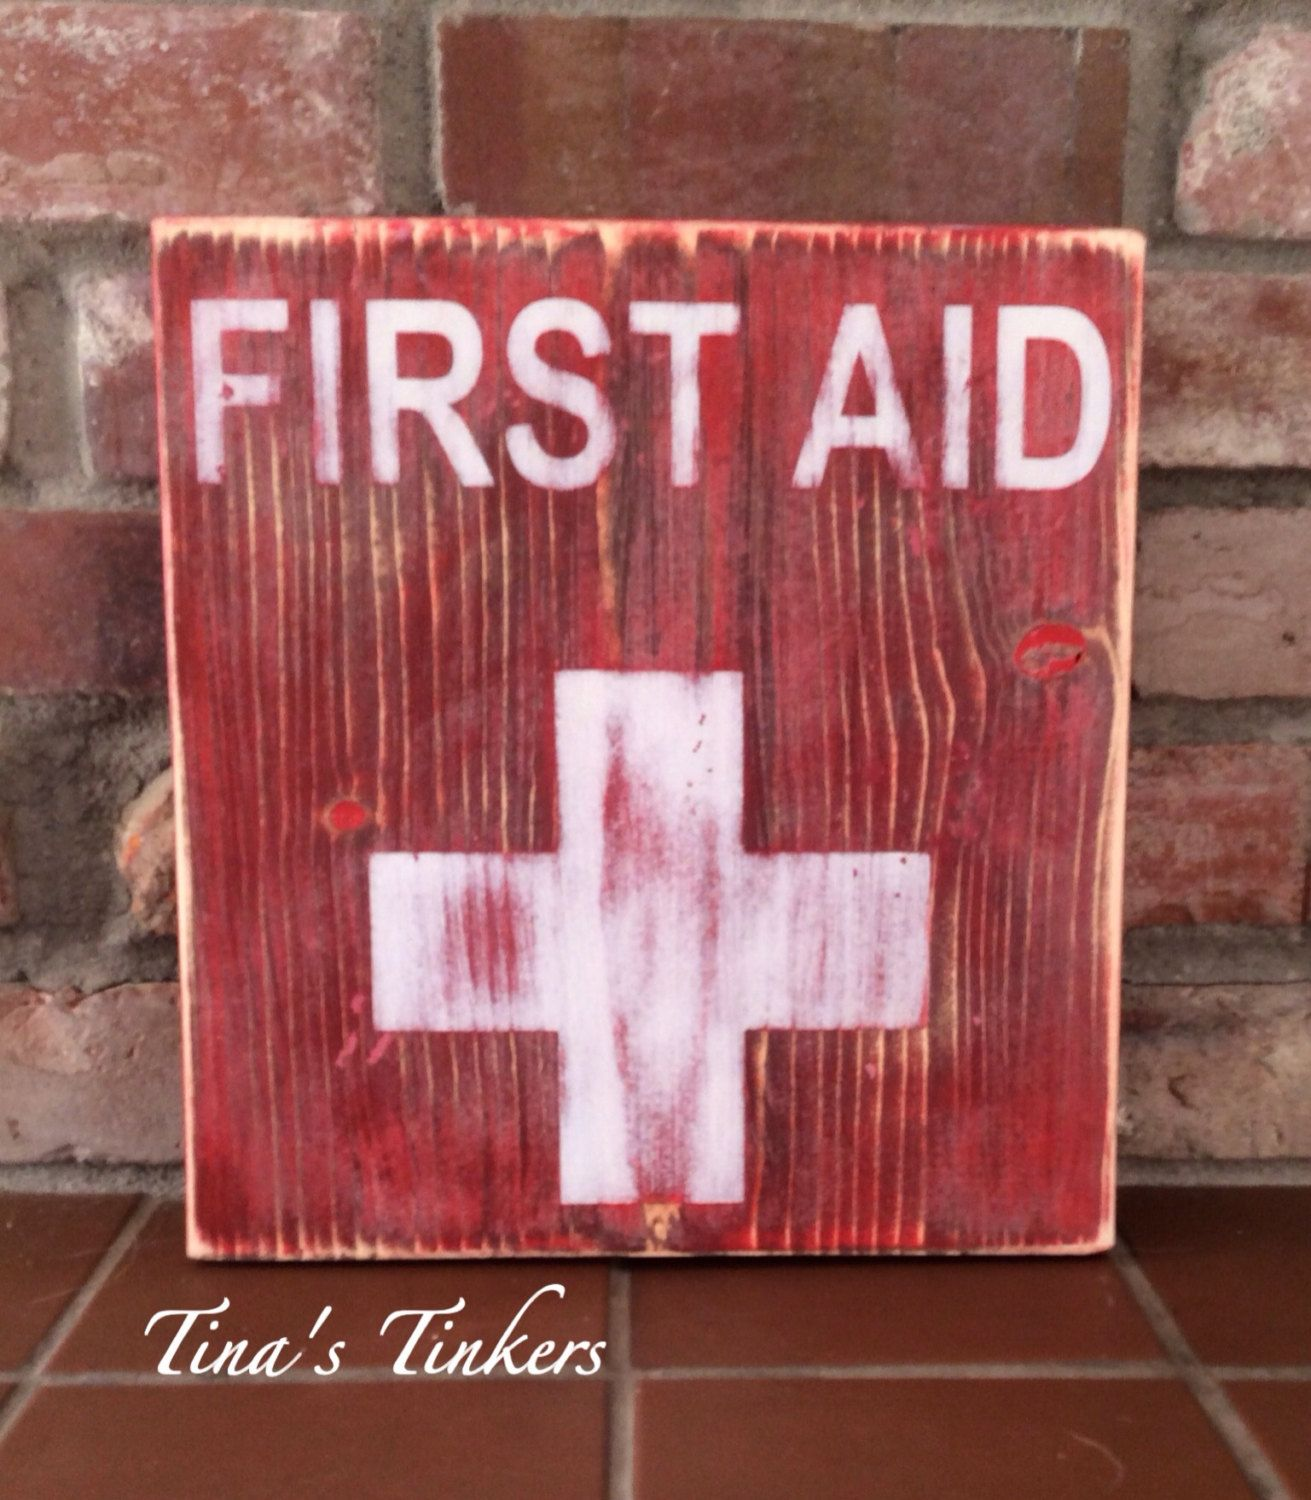 First Aid Painted Wood Sign Vintage Rustic Distressed